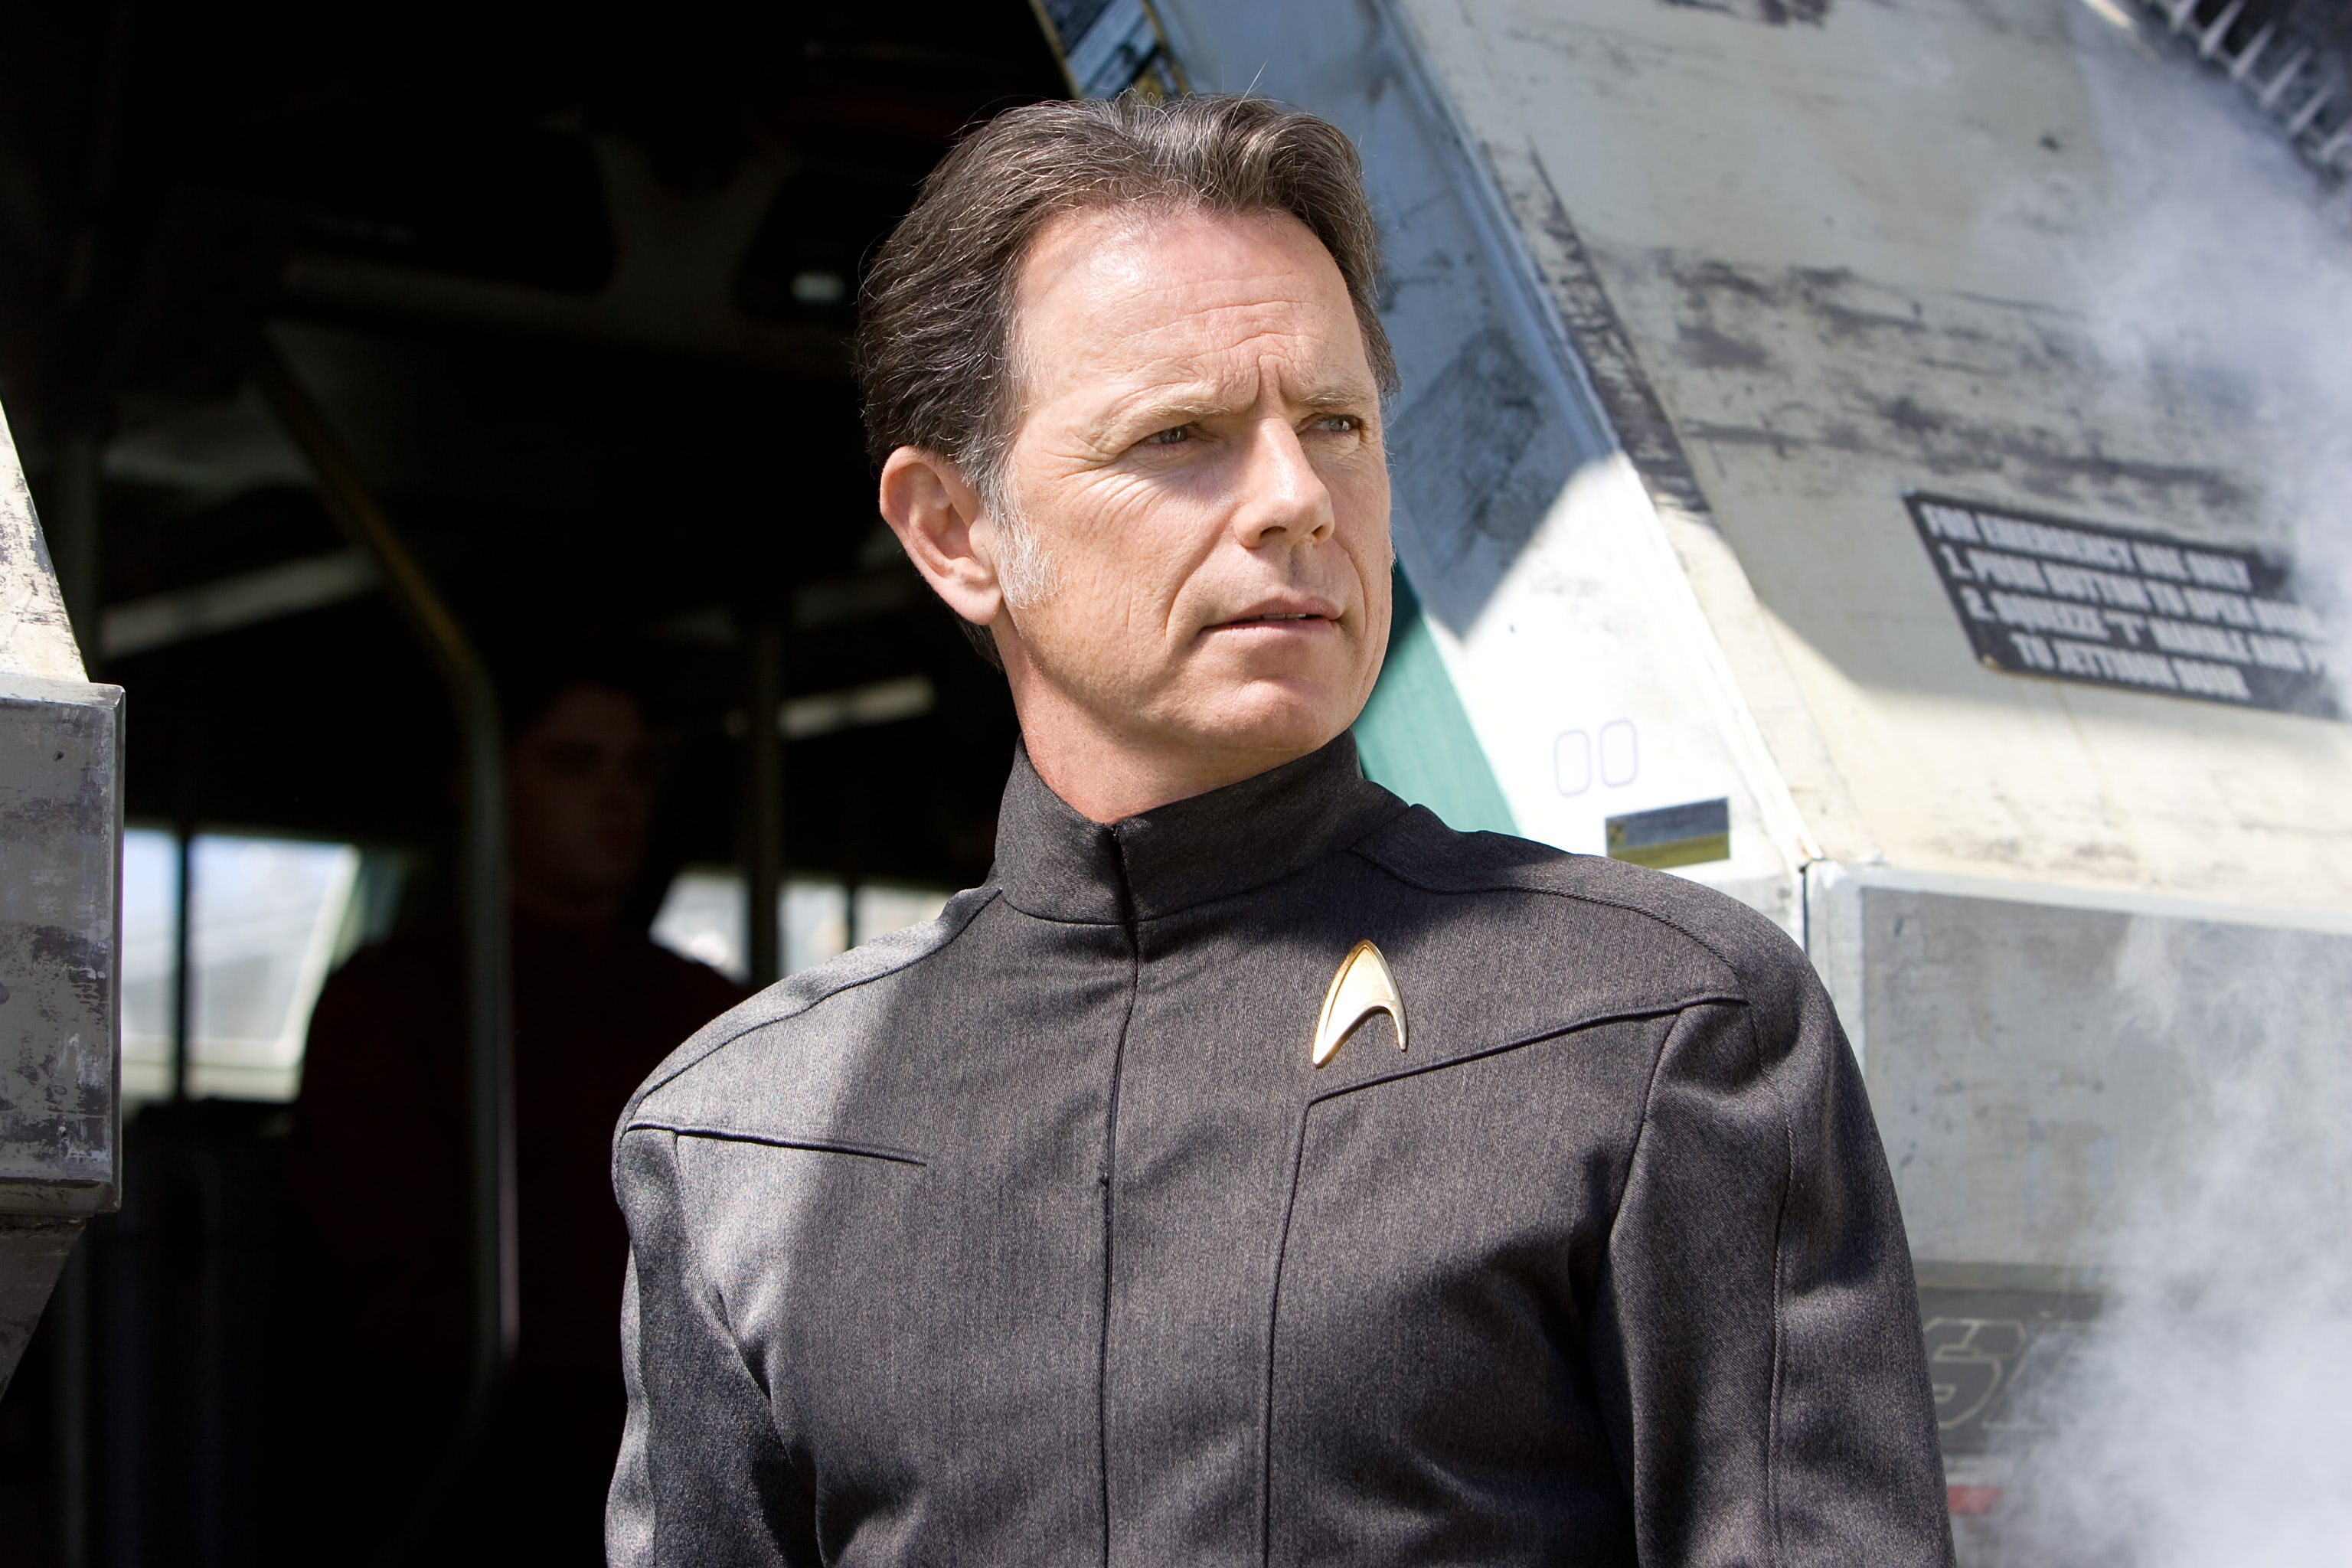 bruce greenwood 4k widescreen desktop wallpaper 1229